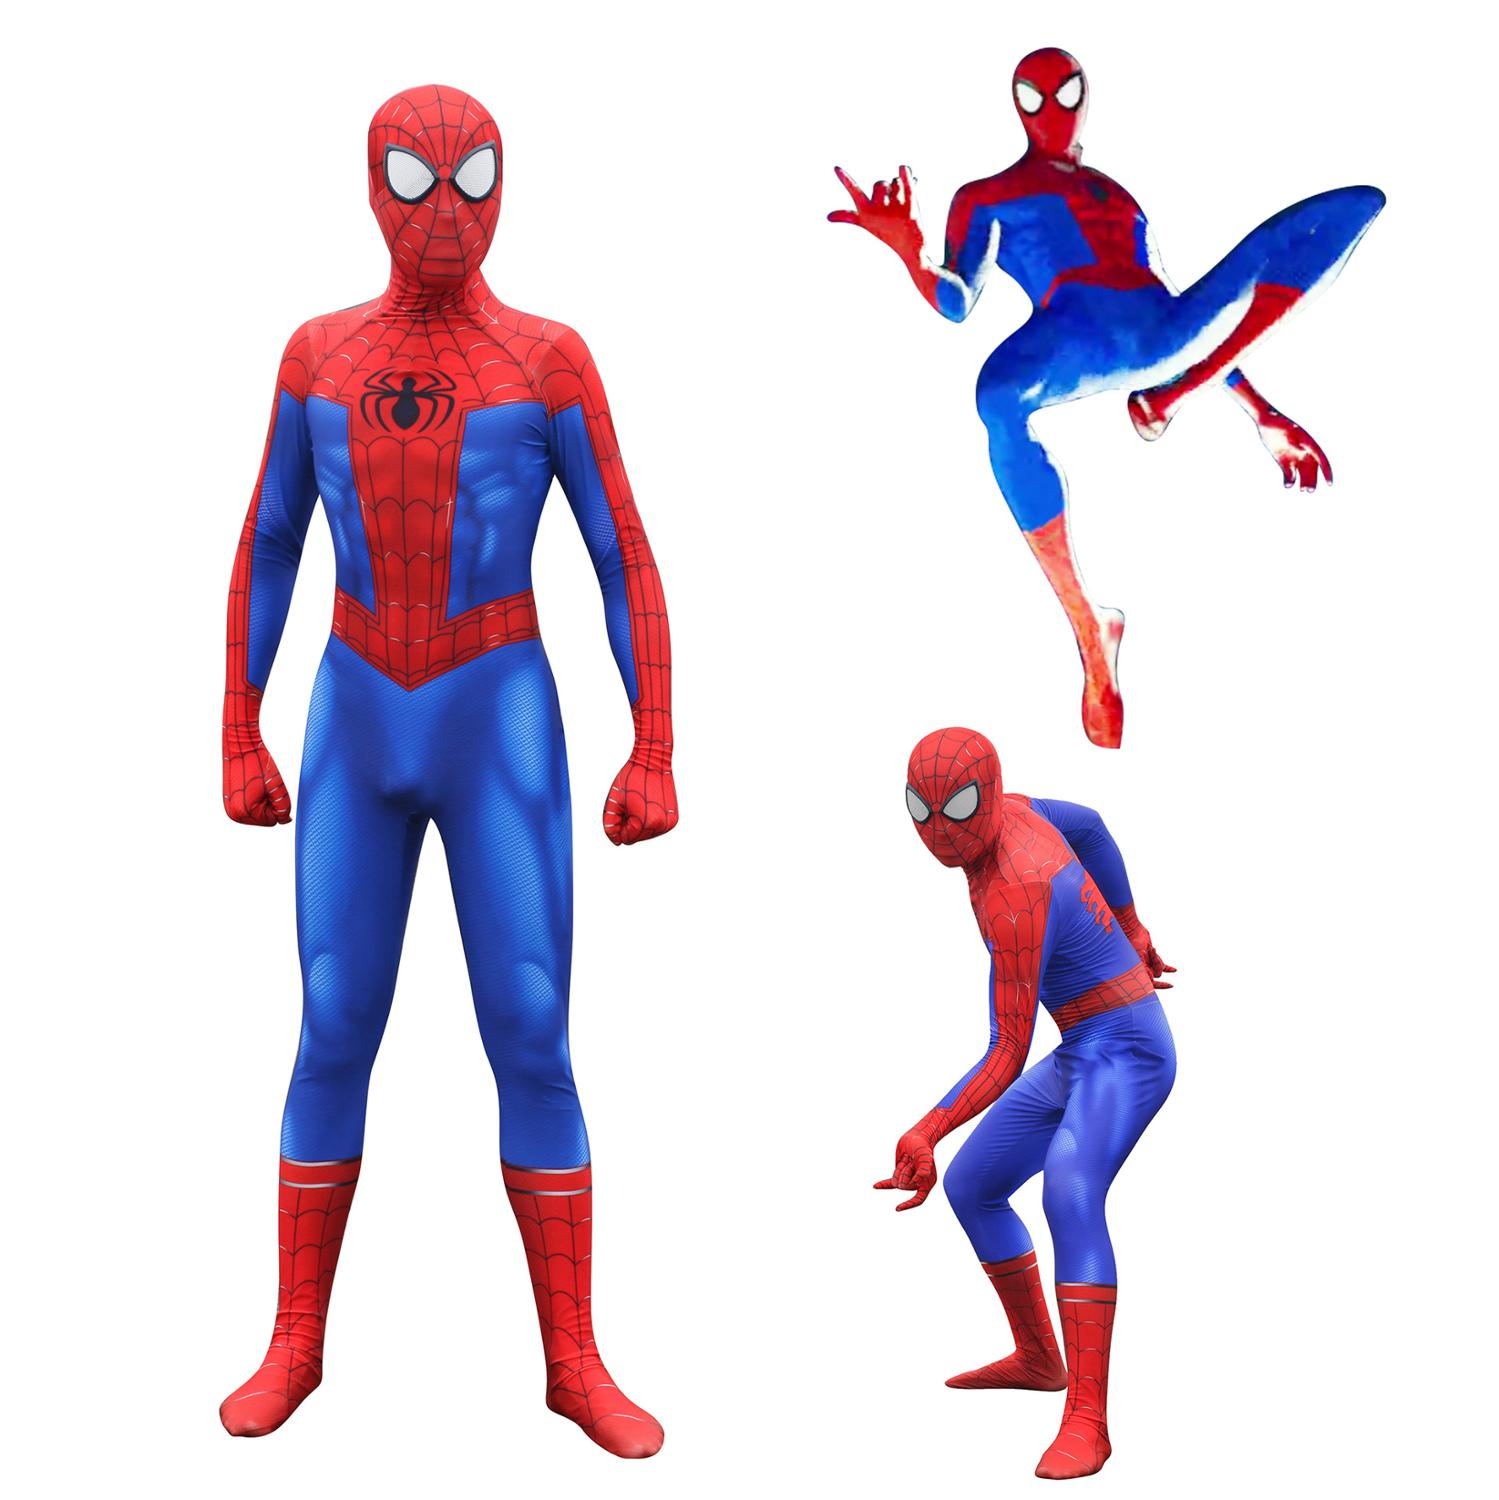 Spider-Man: Into the Spider-Verse Peter Parker cosplay Costume Zentai Spiderman Superhero Bodysuit Suit Jumpsuits